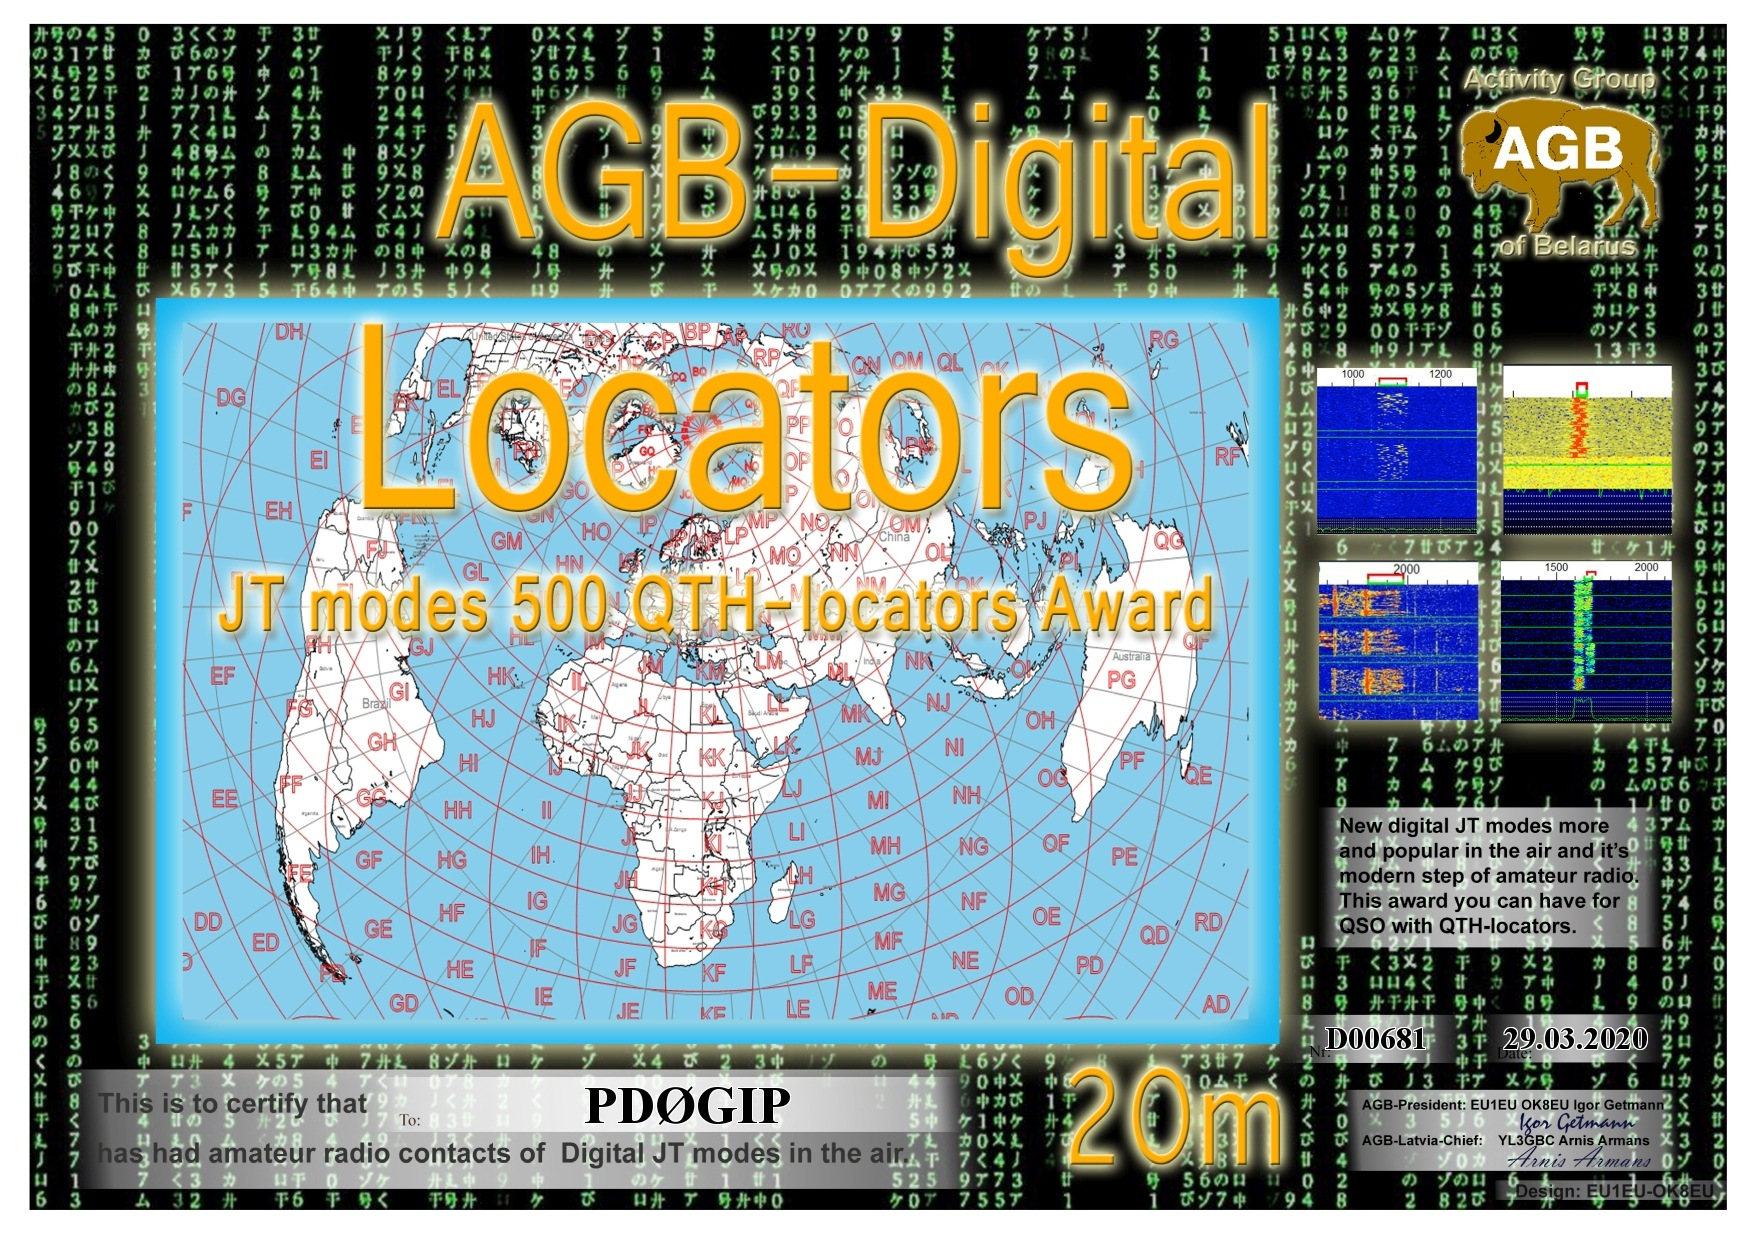 PD0GIP LOCATORS 20M 500 AGB